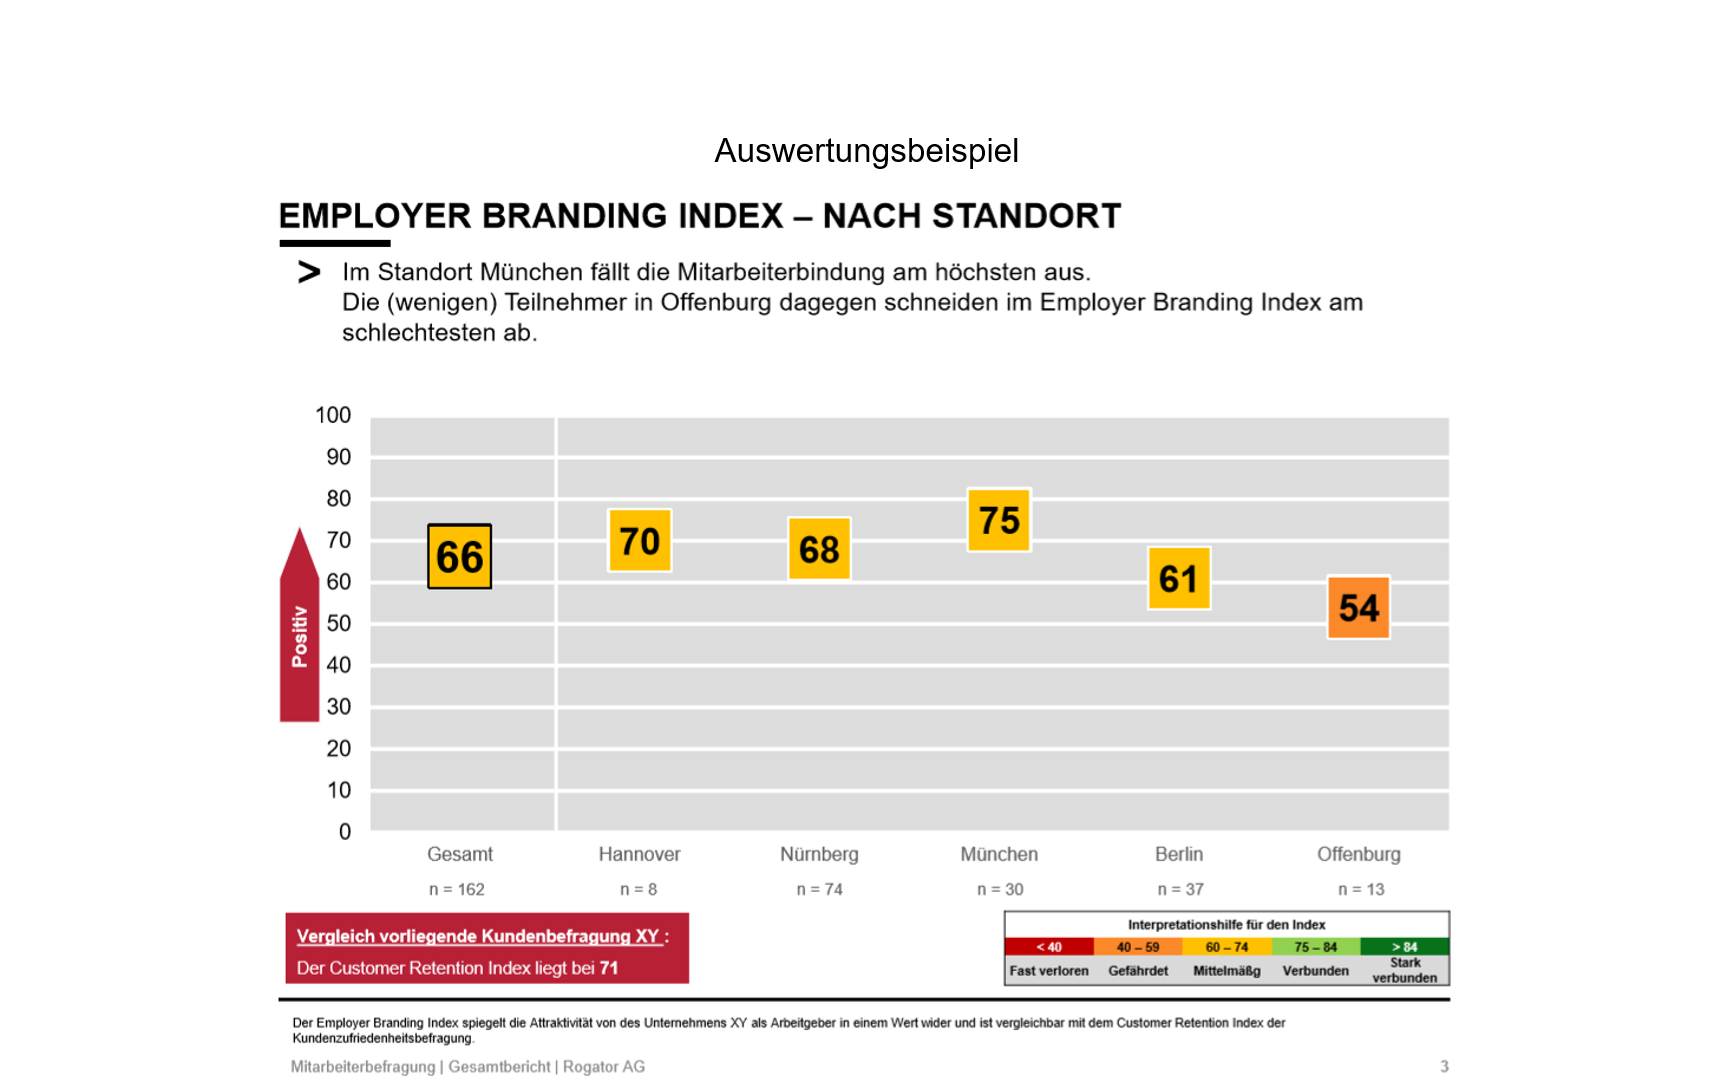 Employer Branding_Auswertungsbeispiel2